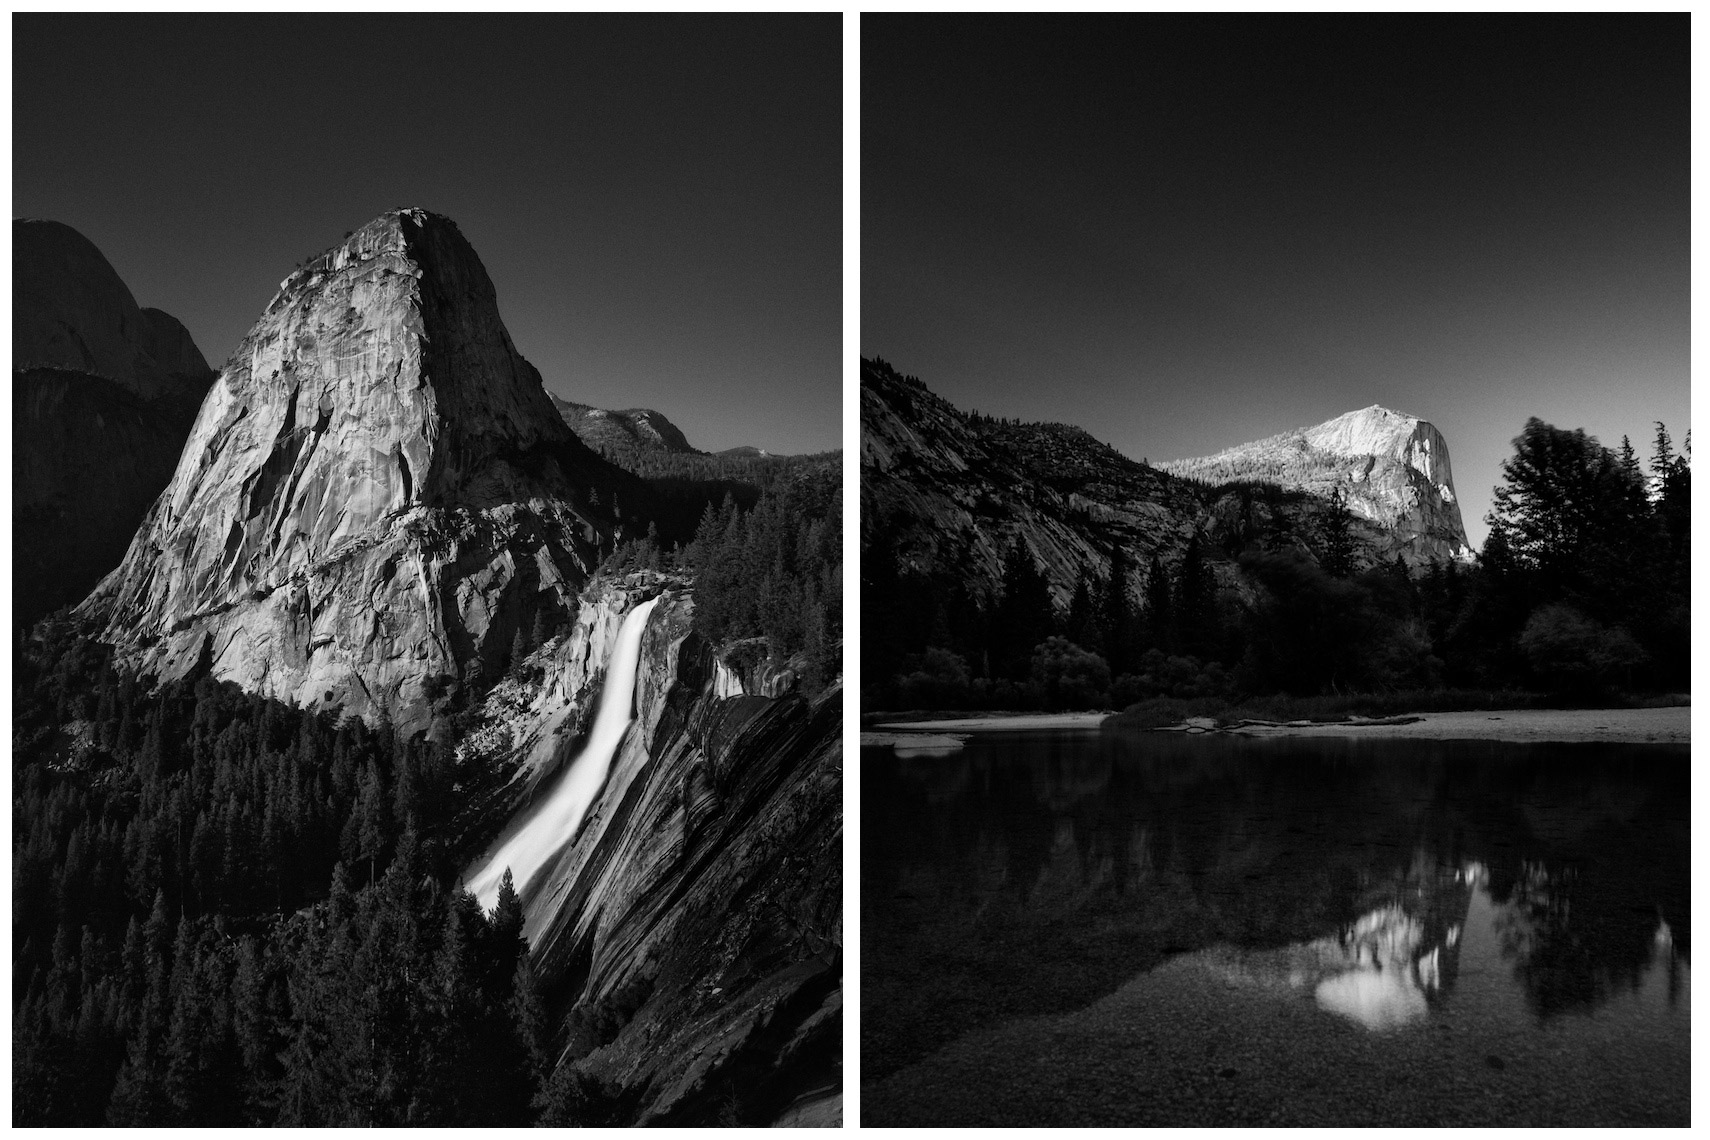 Liberty Cap and Nevada Fall | Mirror Lake and Mount Watkins | Yosemite NP